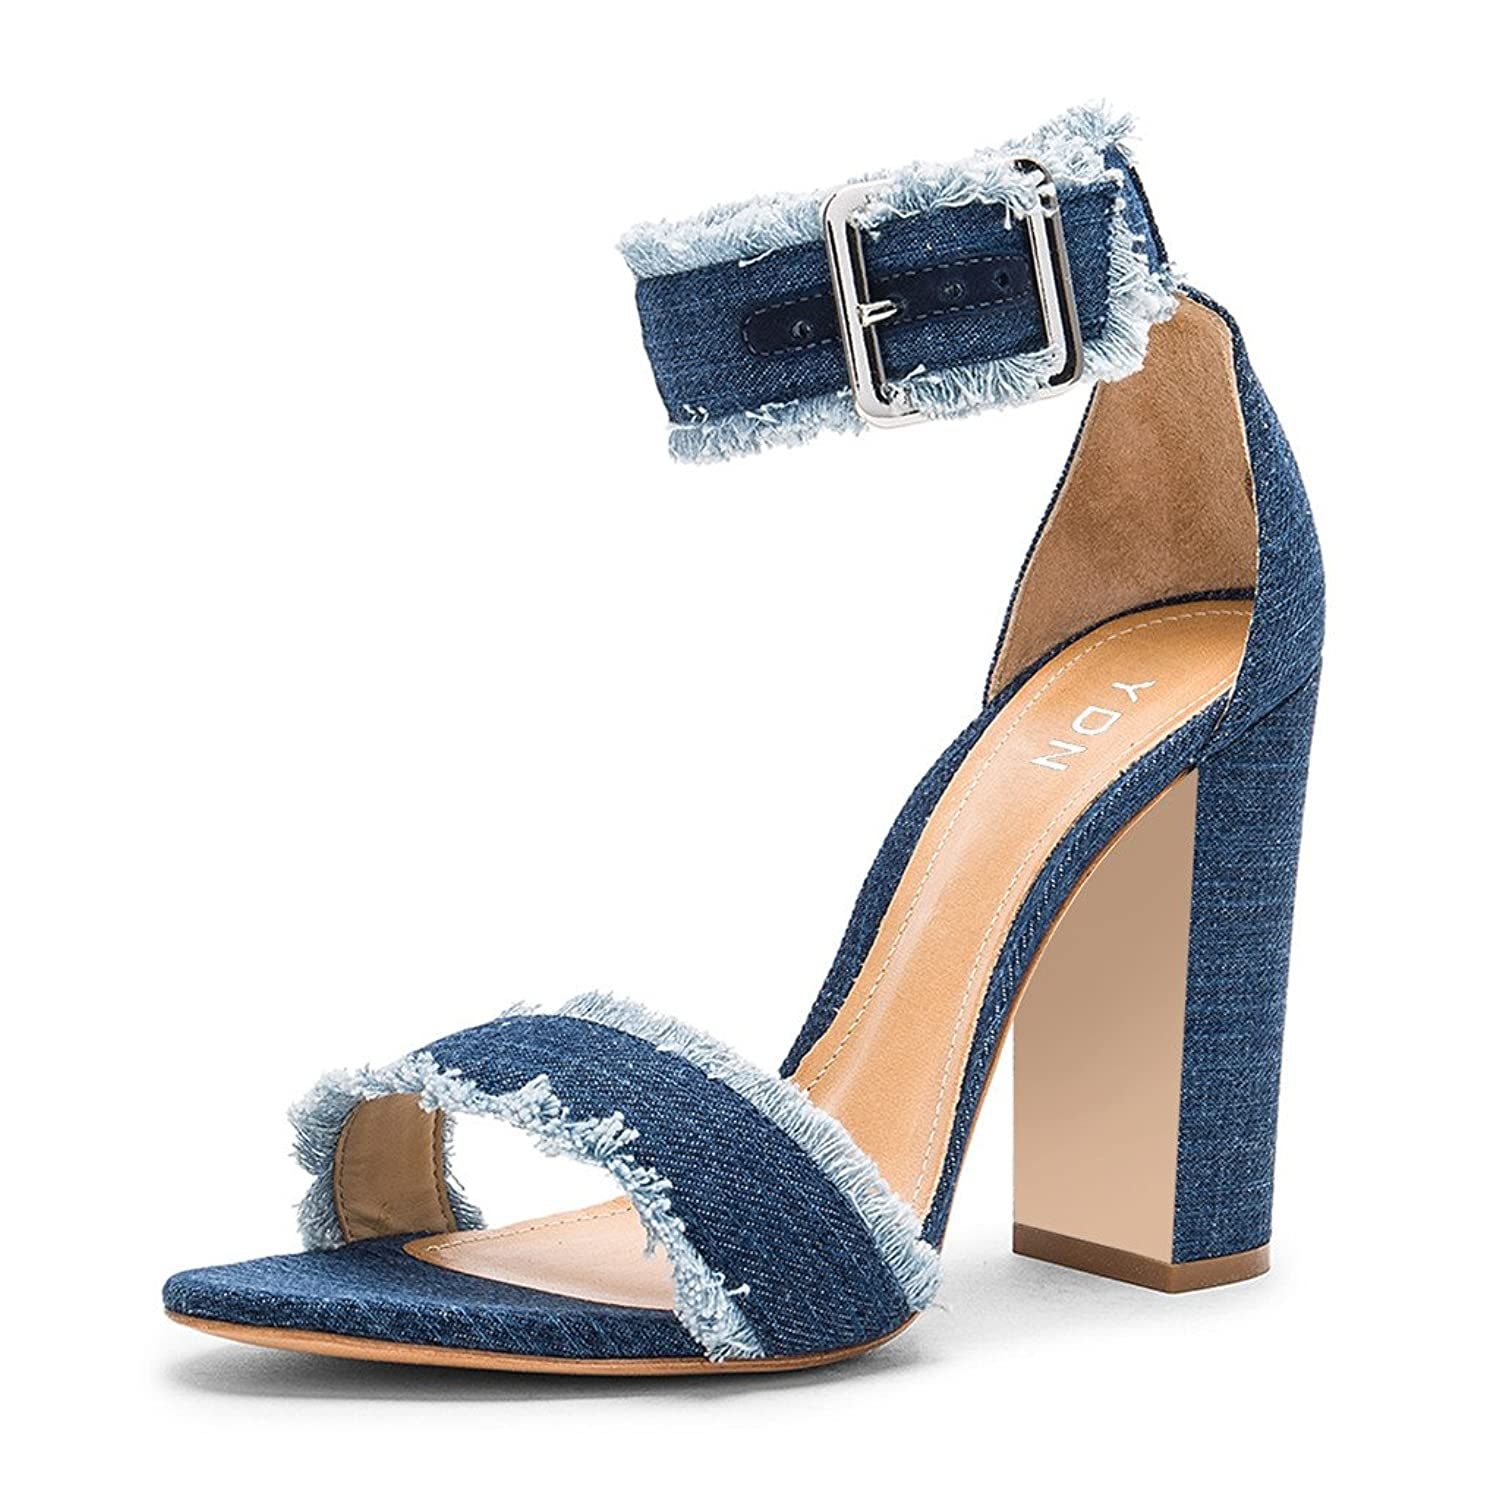 e4c45231 YDN Retro Chunky Heel Jeans Sandals Open Toe Ankle Straps Block Shoes for  Women durable service